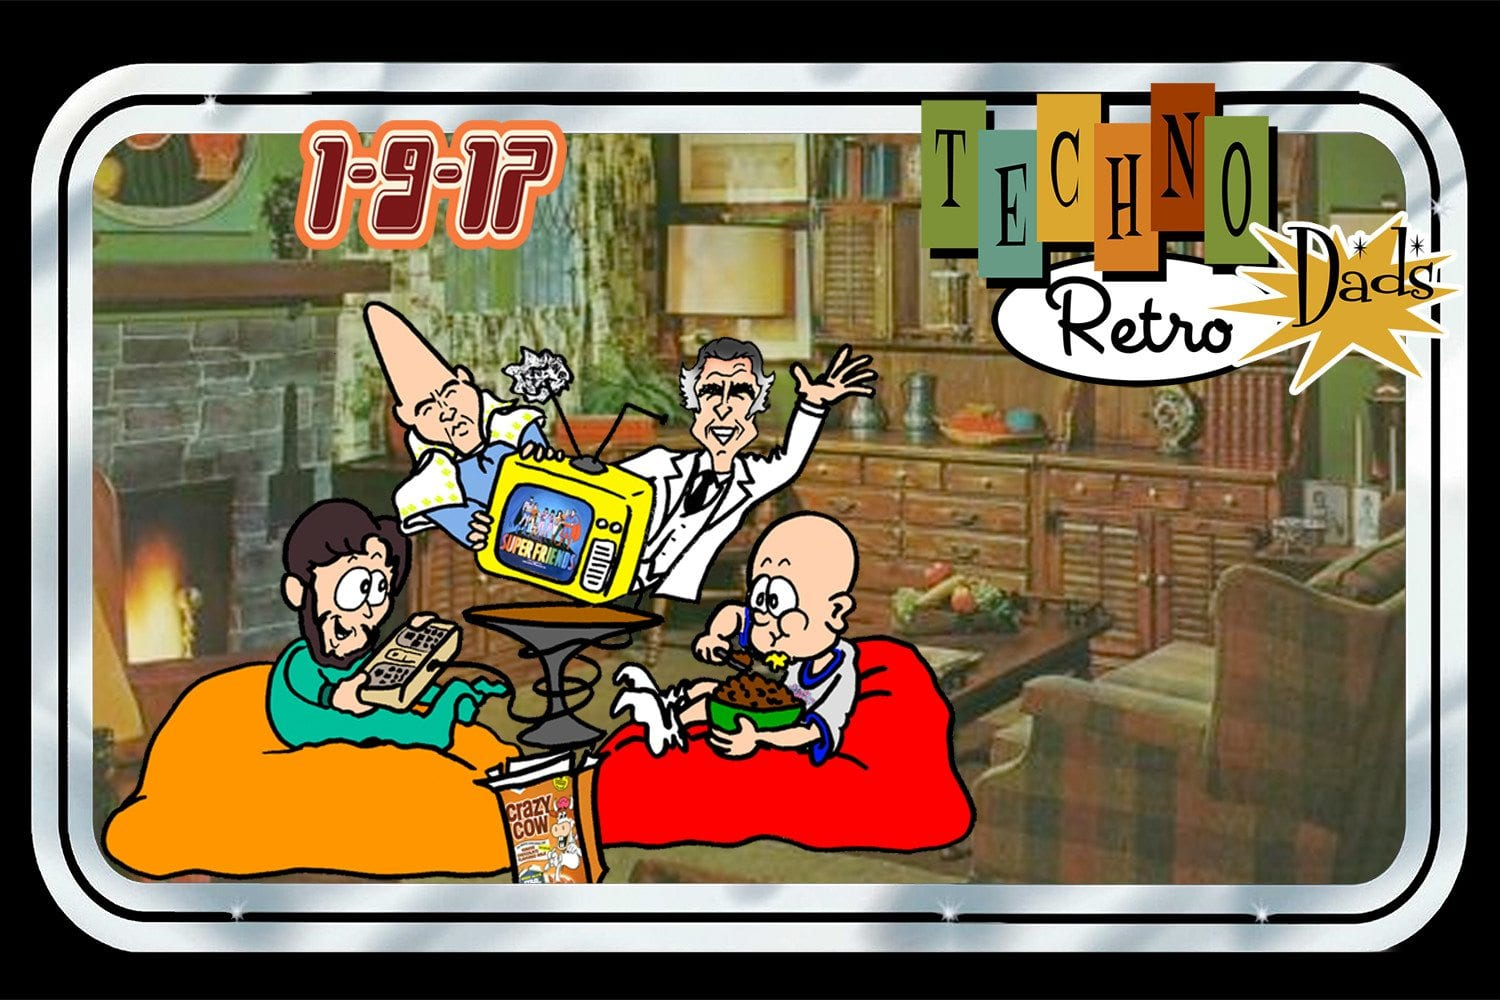 TechnoRetro Dads Aftershocks of 1977